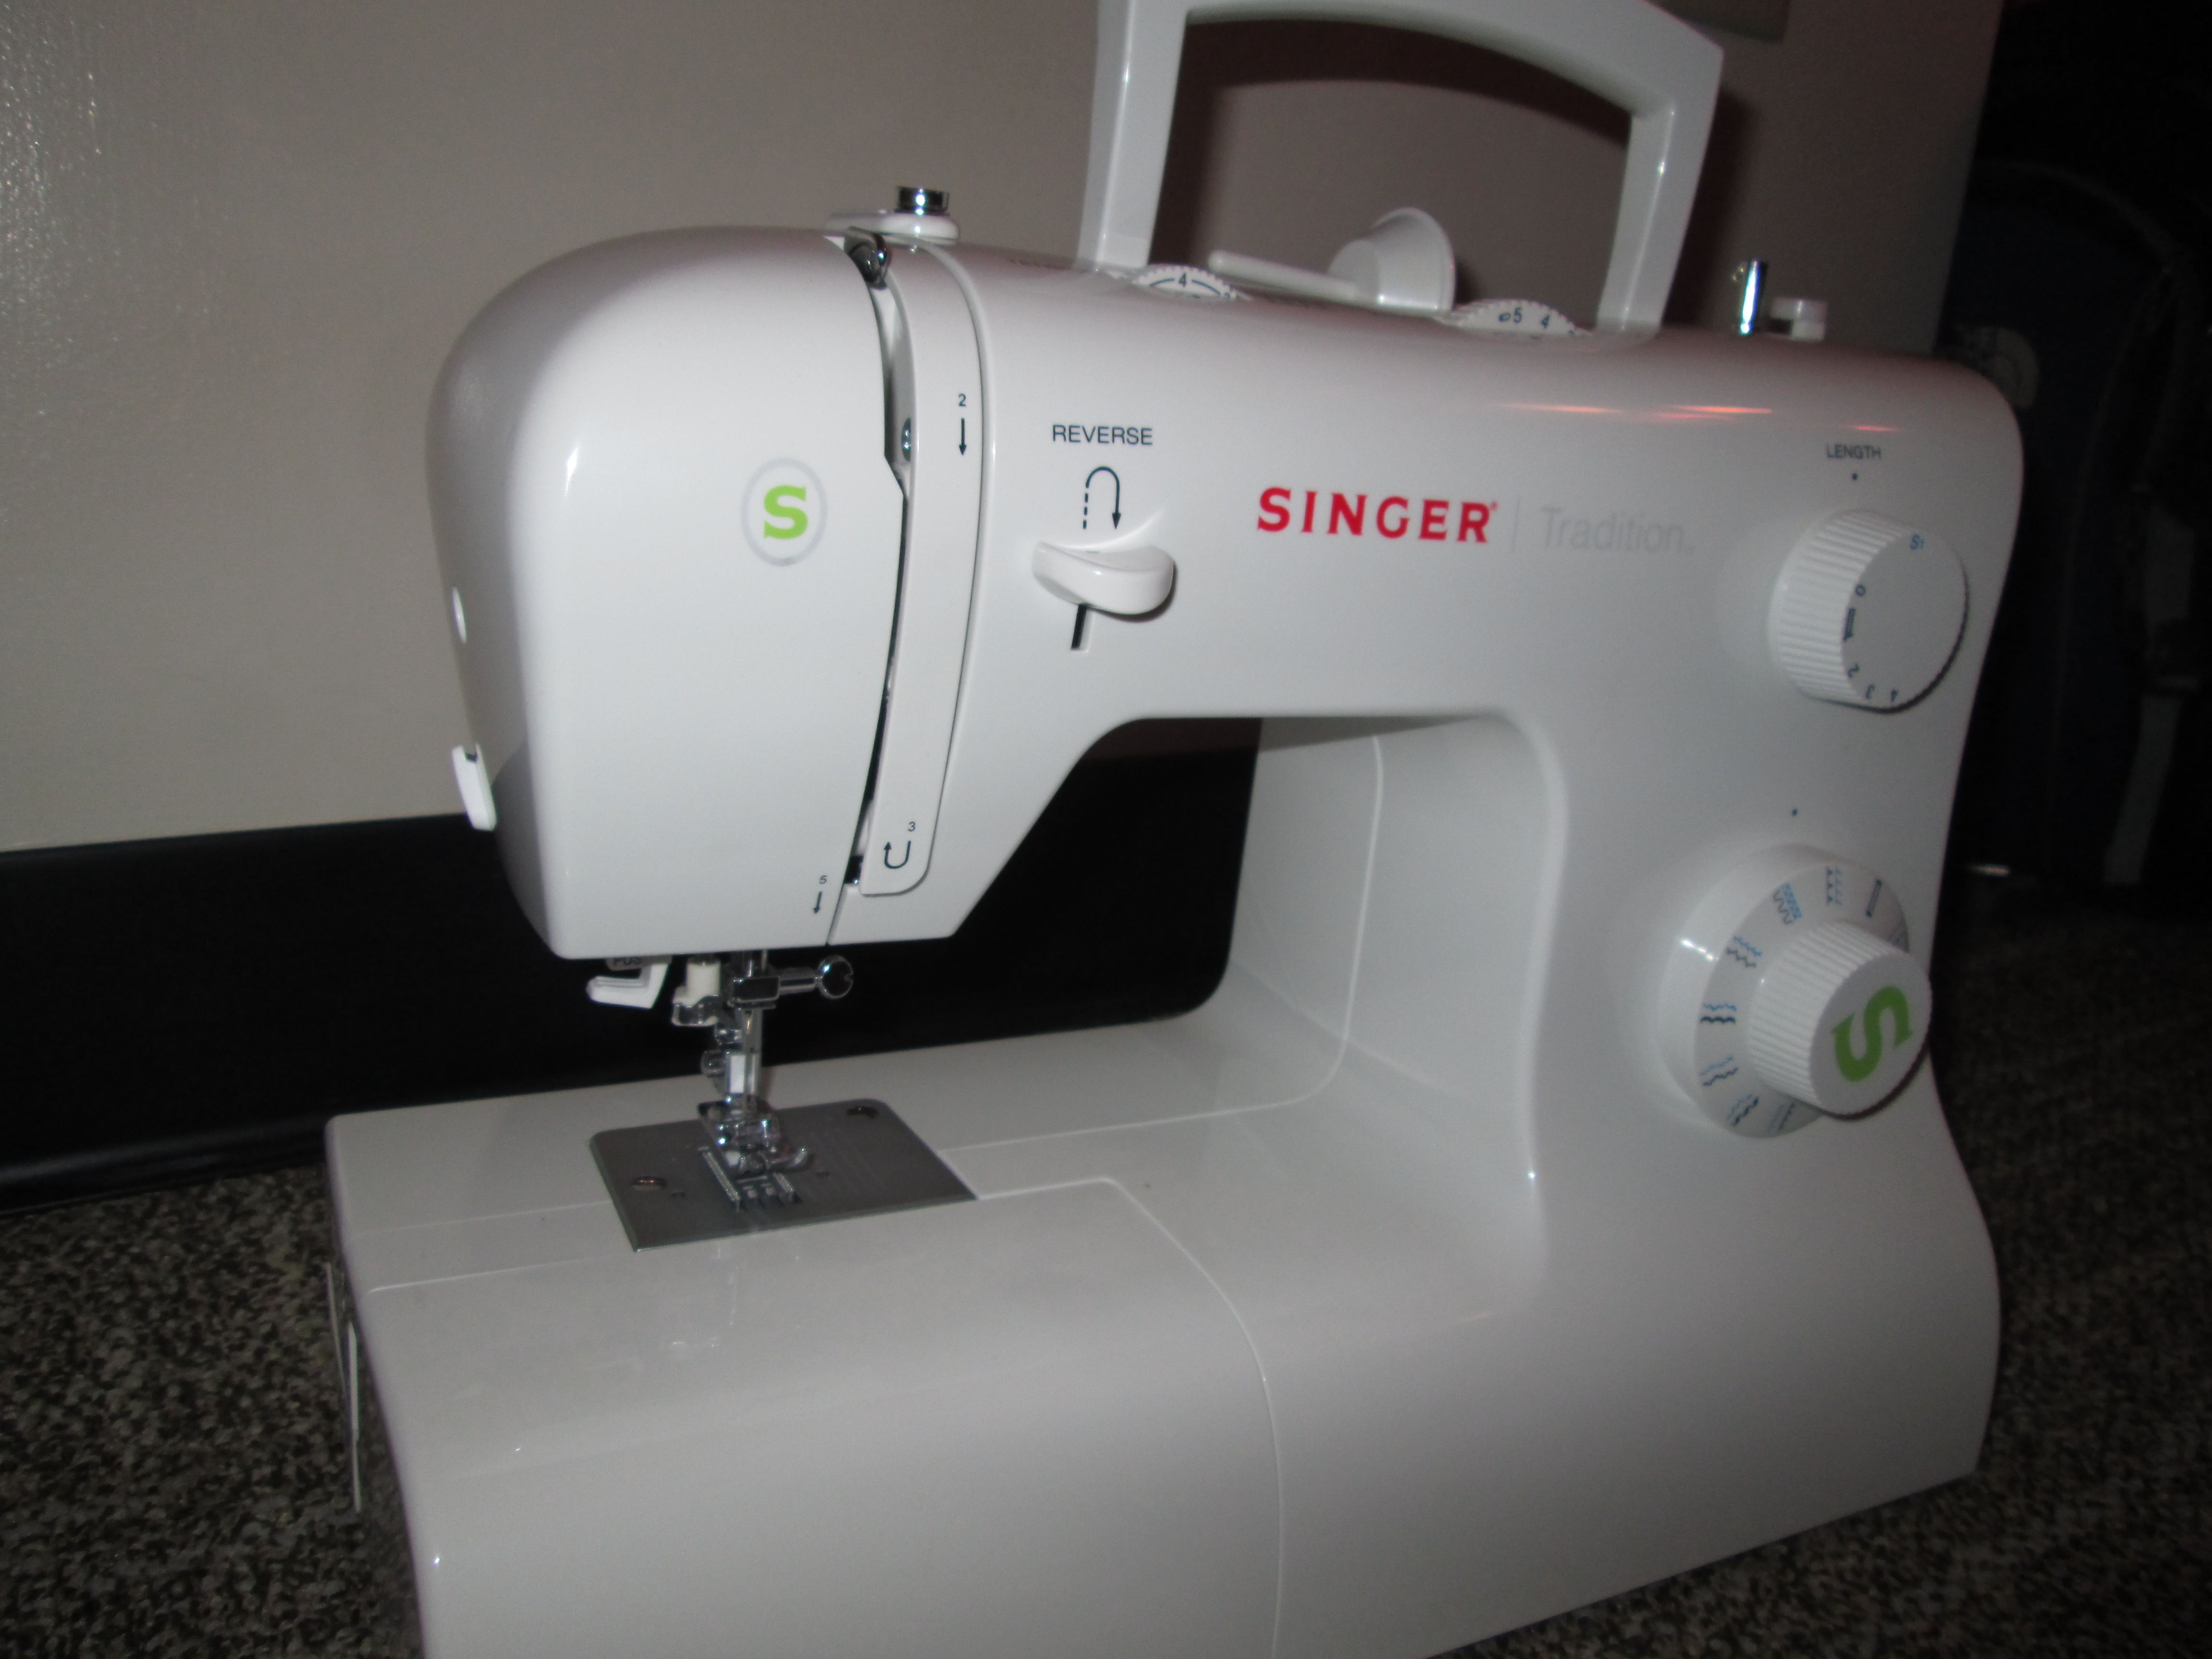 learn how to usea sewing machine